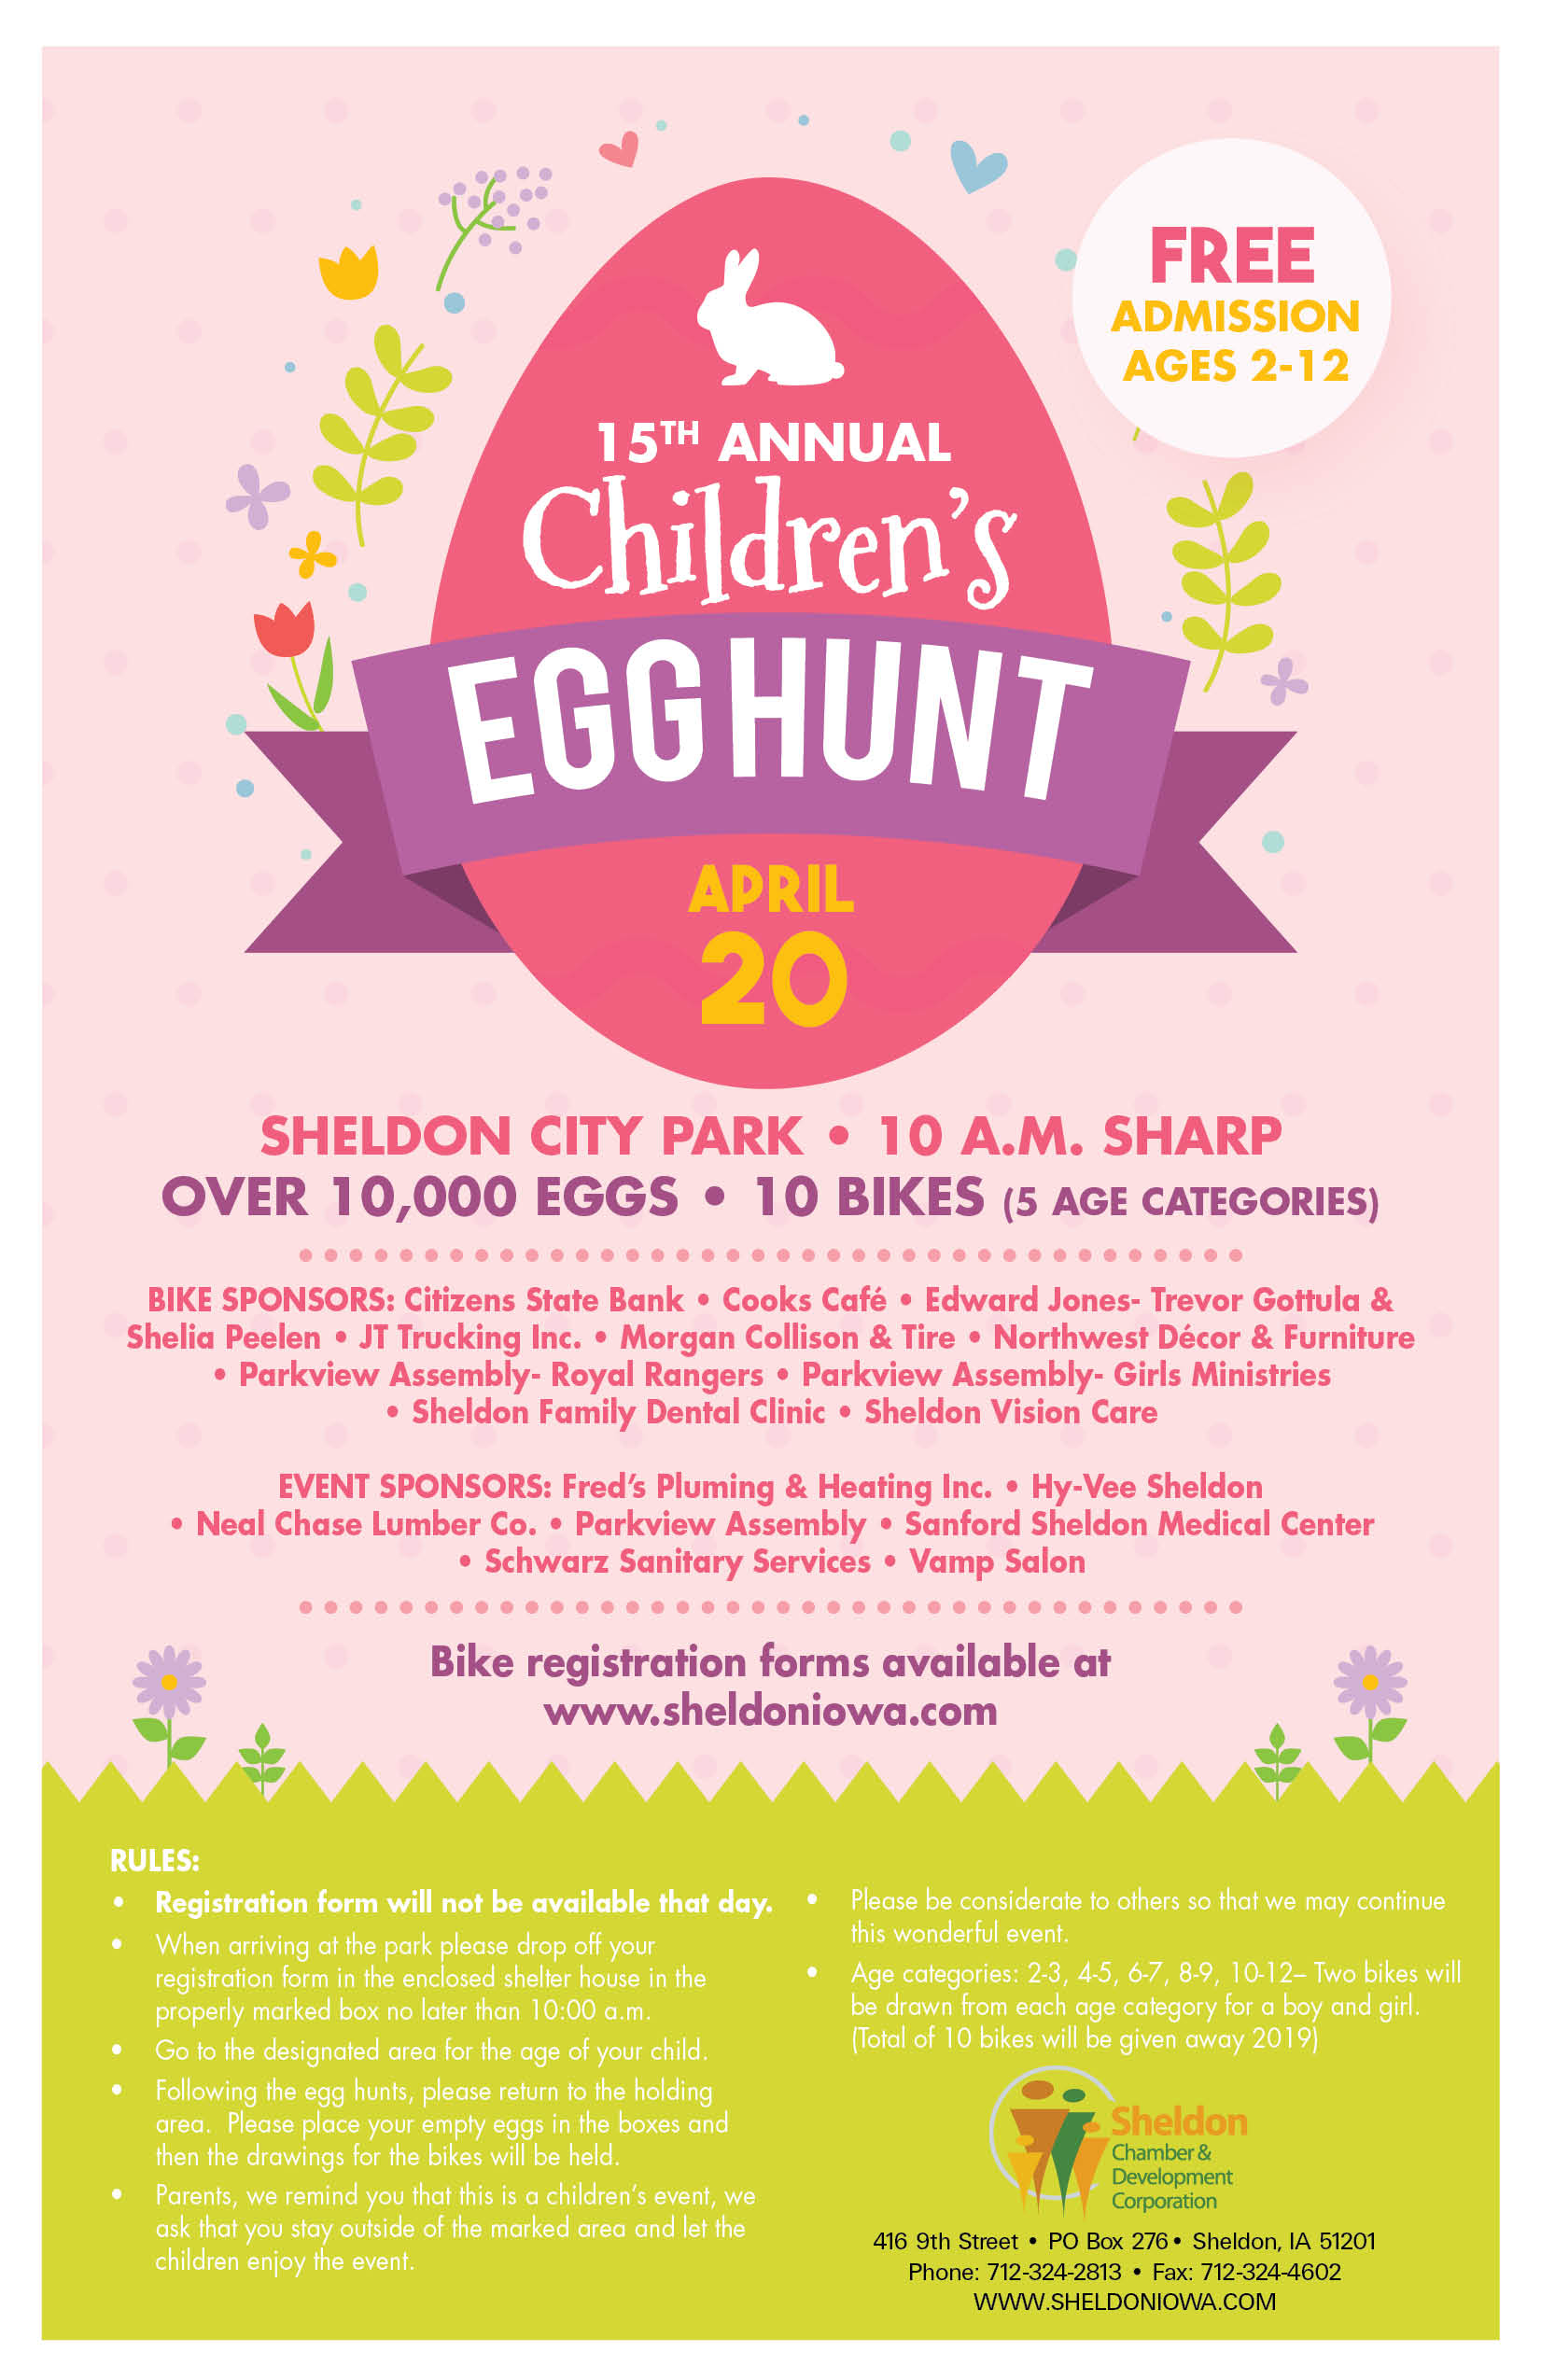 15th Annual Children's Easter Egg Hunt